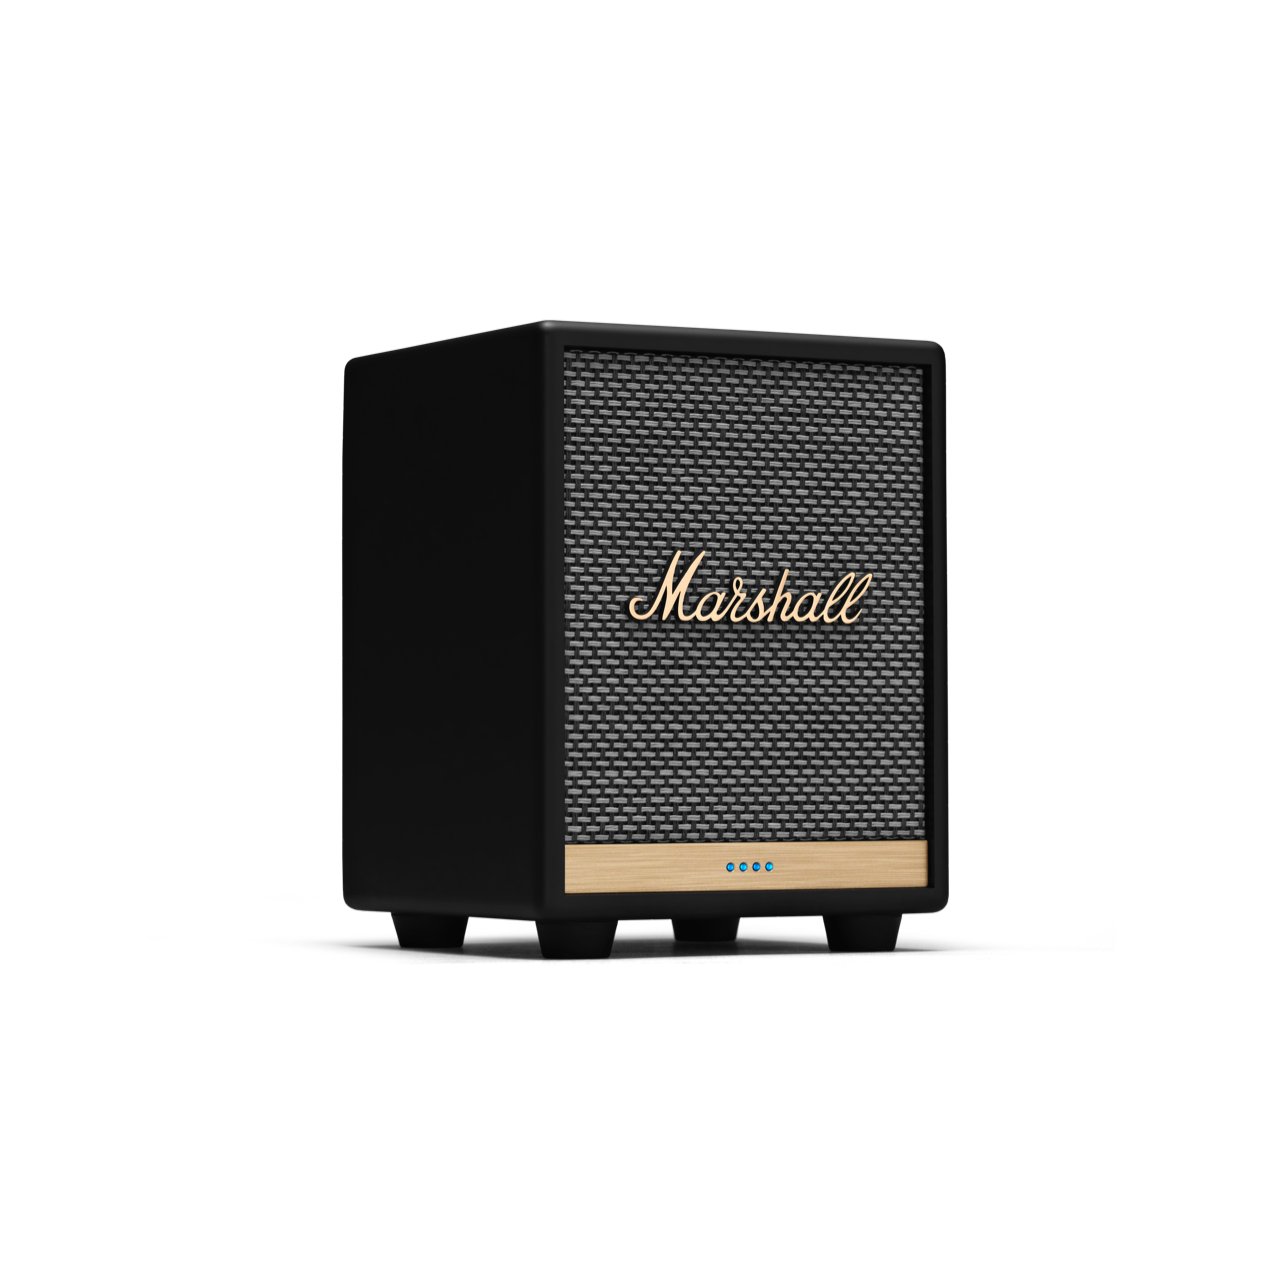 Uxbridge Voice - Alexa controlled speaker | Marshall